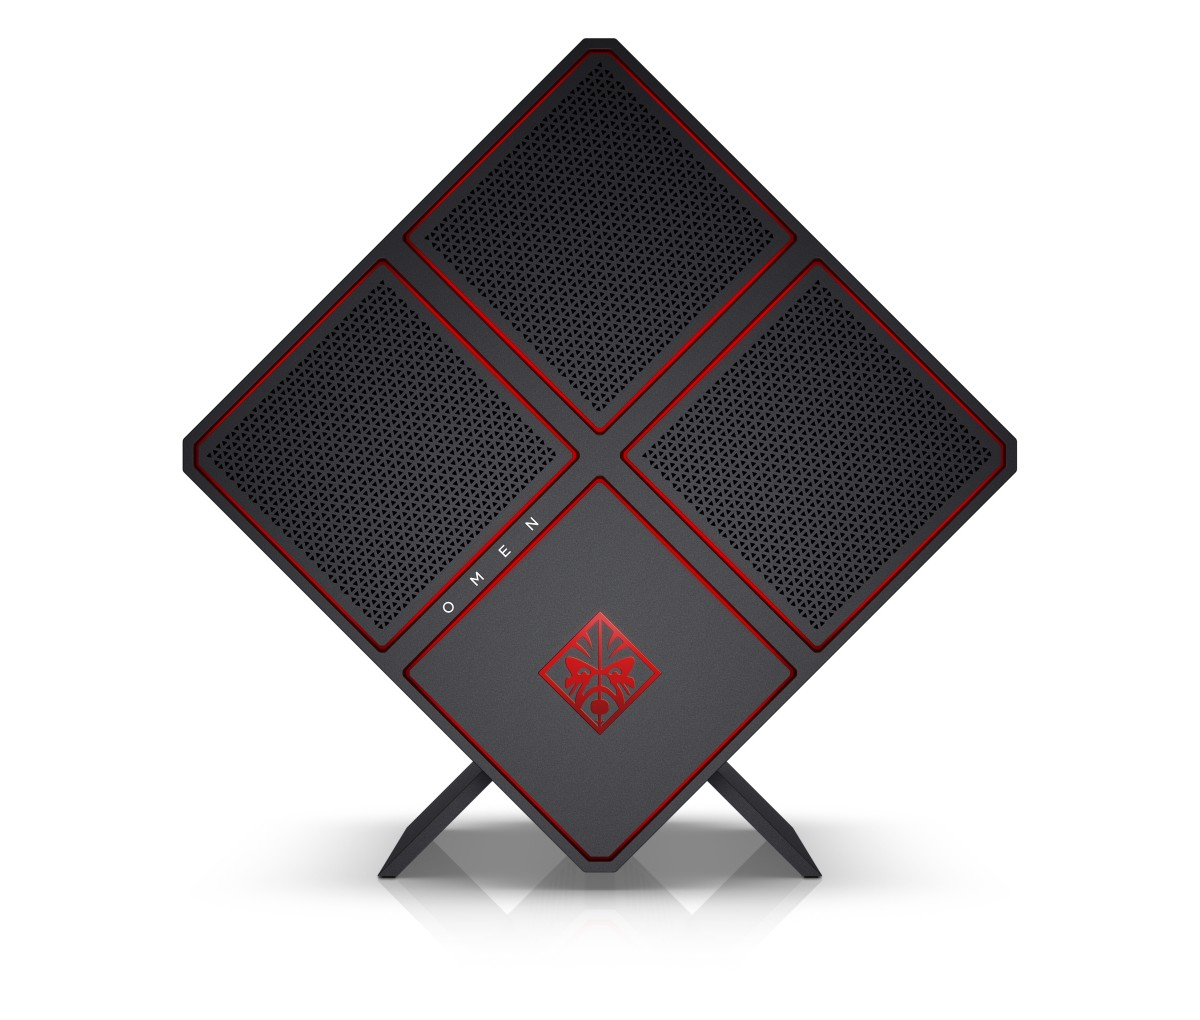 OMEN X by HP Pavilion 900-070nc i7-6700K/32GB/256SSD+2TB/DVD/NV/W10